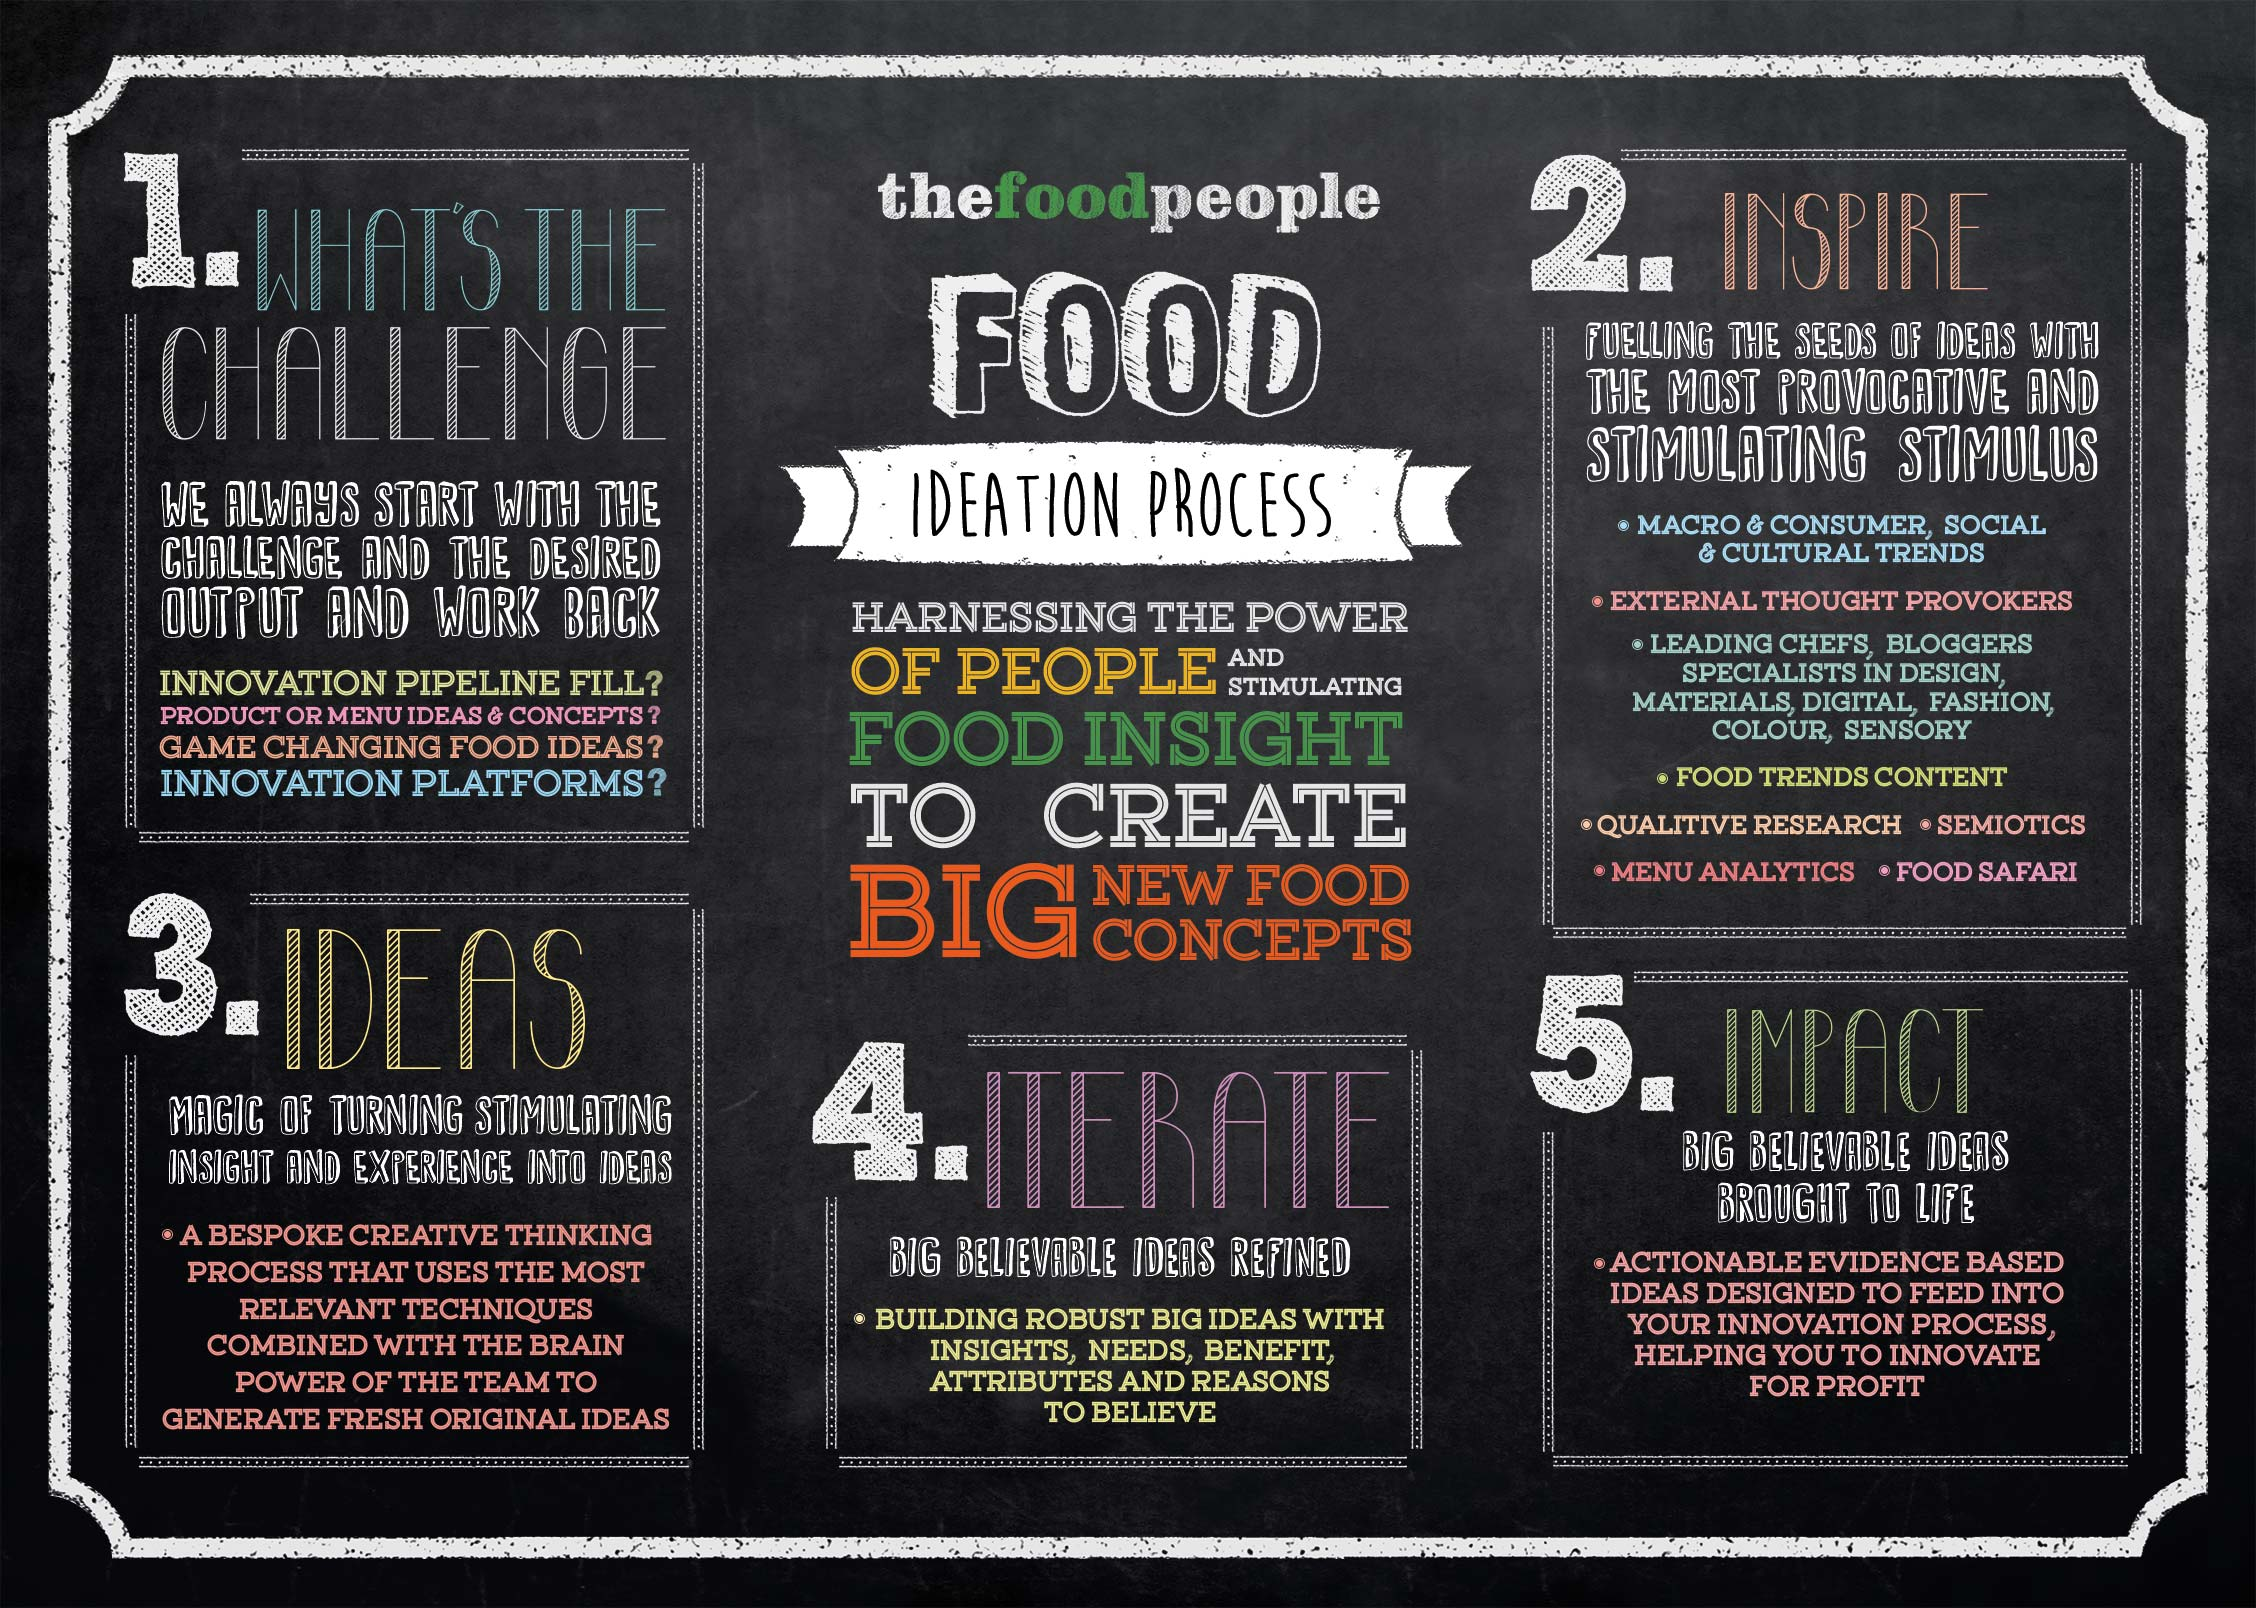 thefoodpeople ideation process